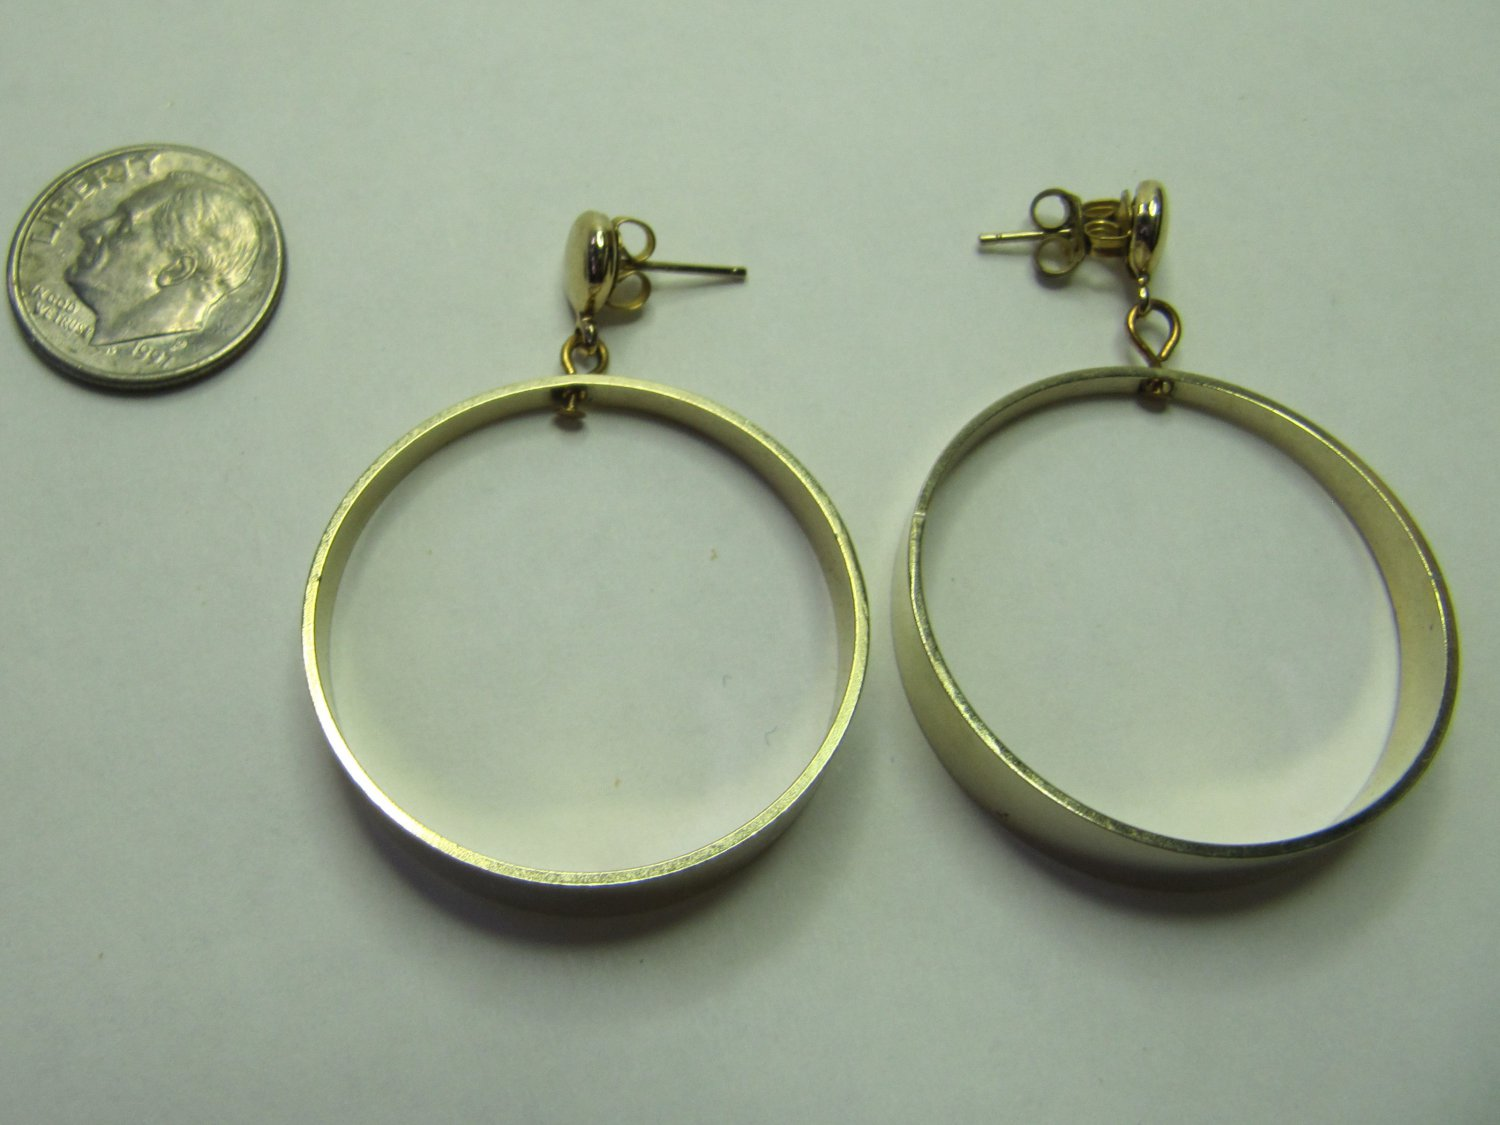 Vintage Pierced Earrings Gold Tone Metal Hoops Full Circle Graduated Dangle 1.25 Inch